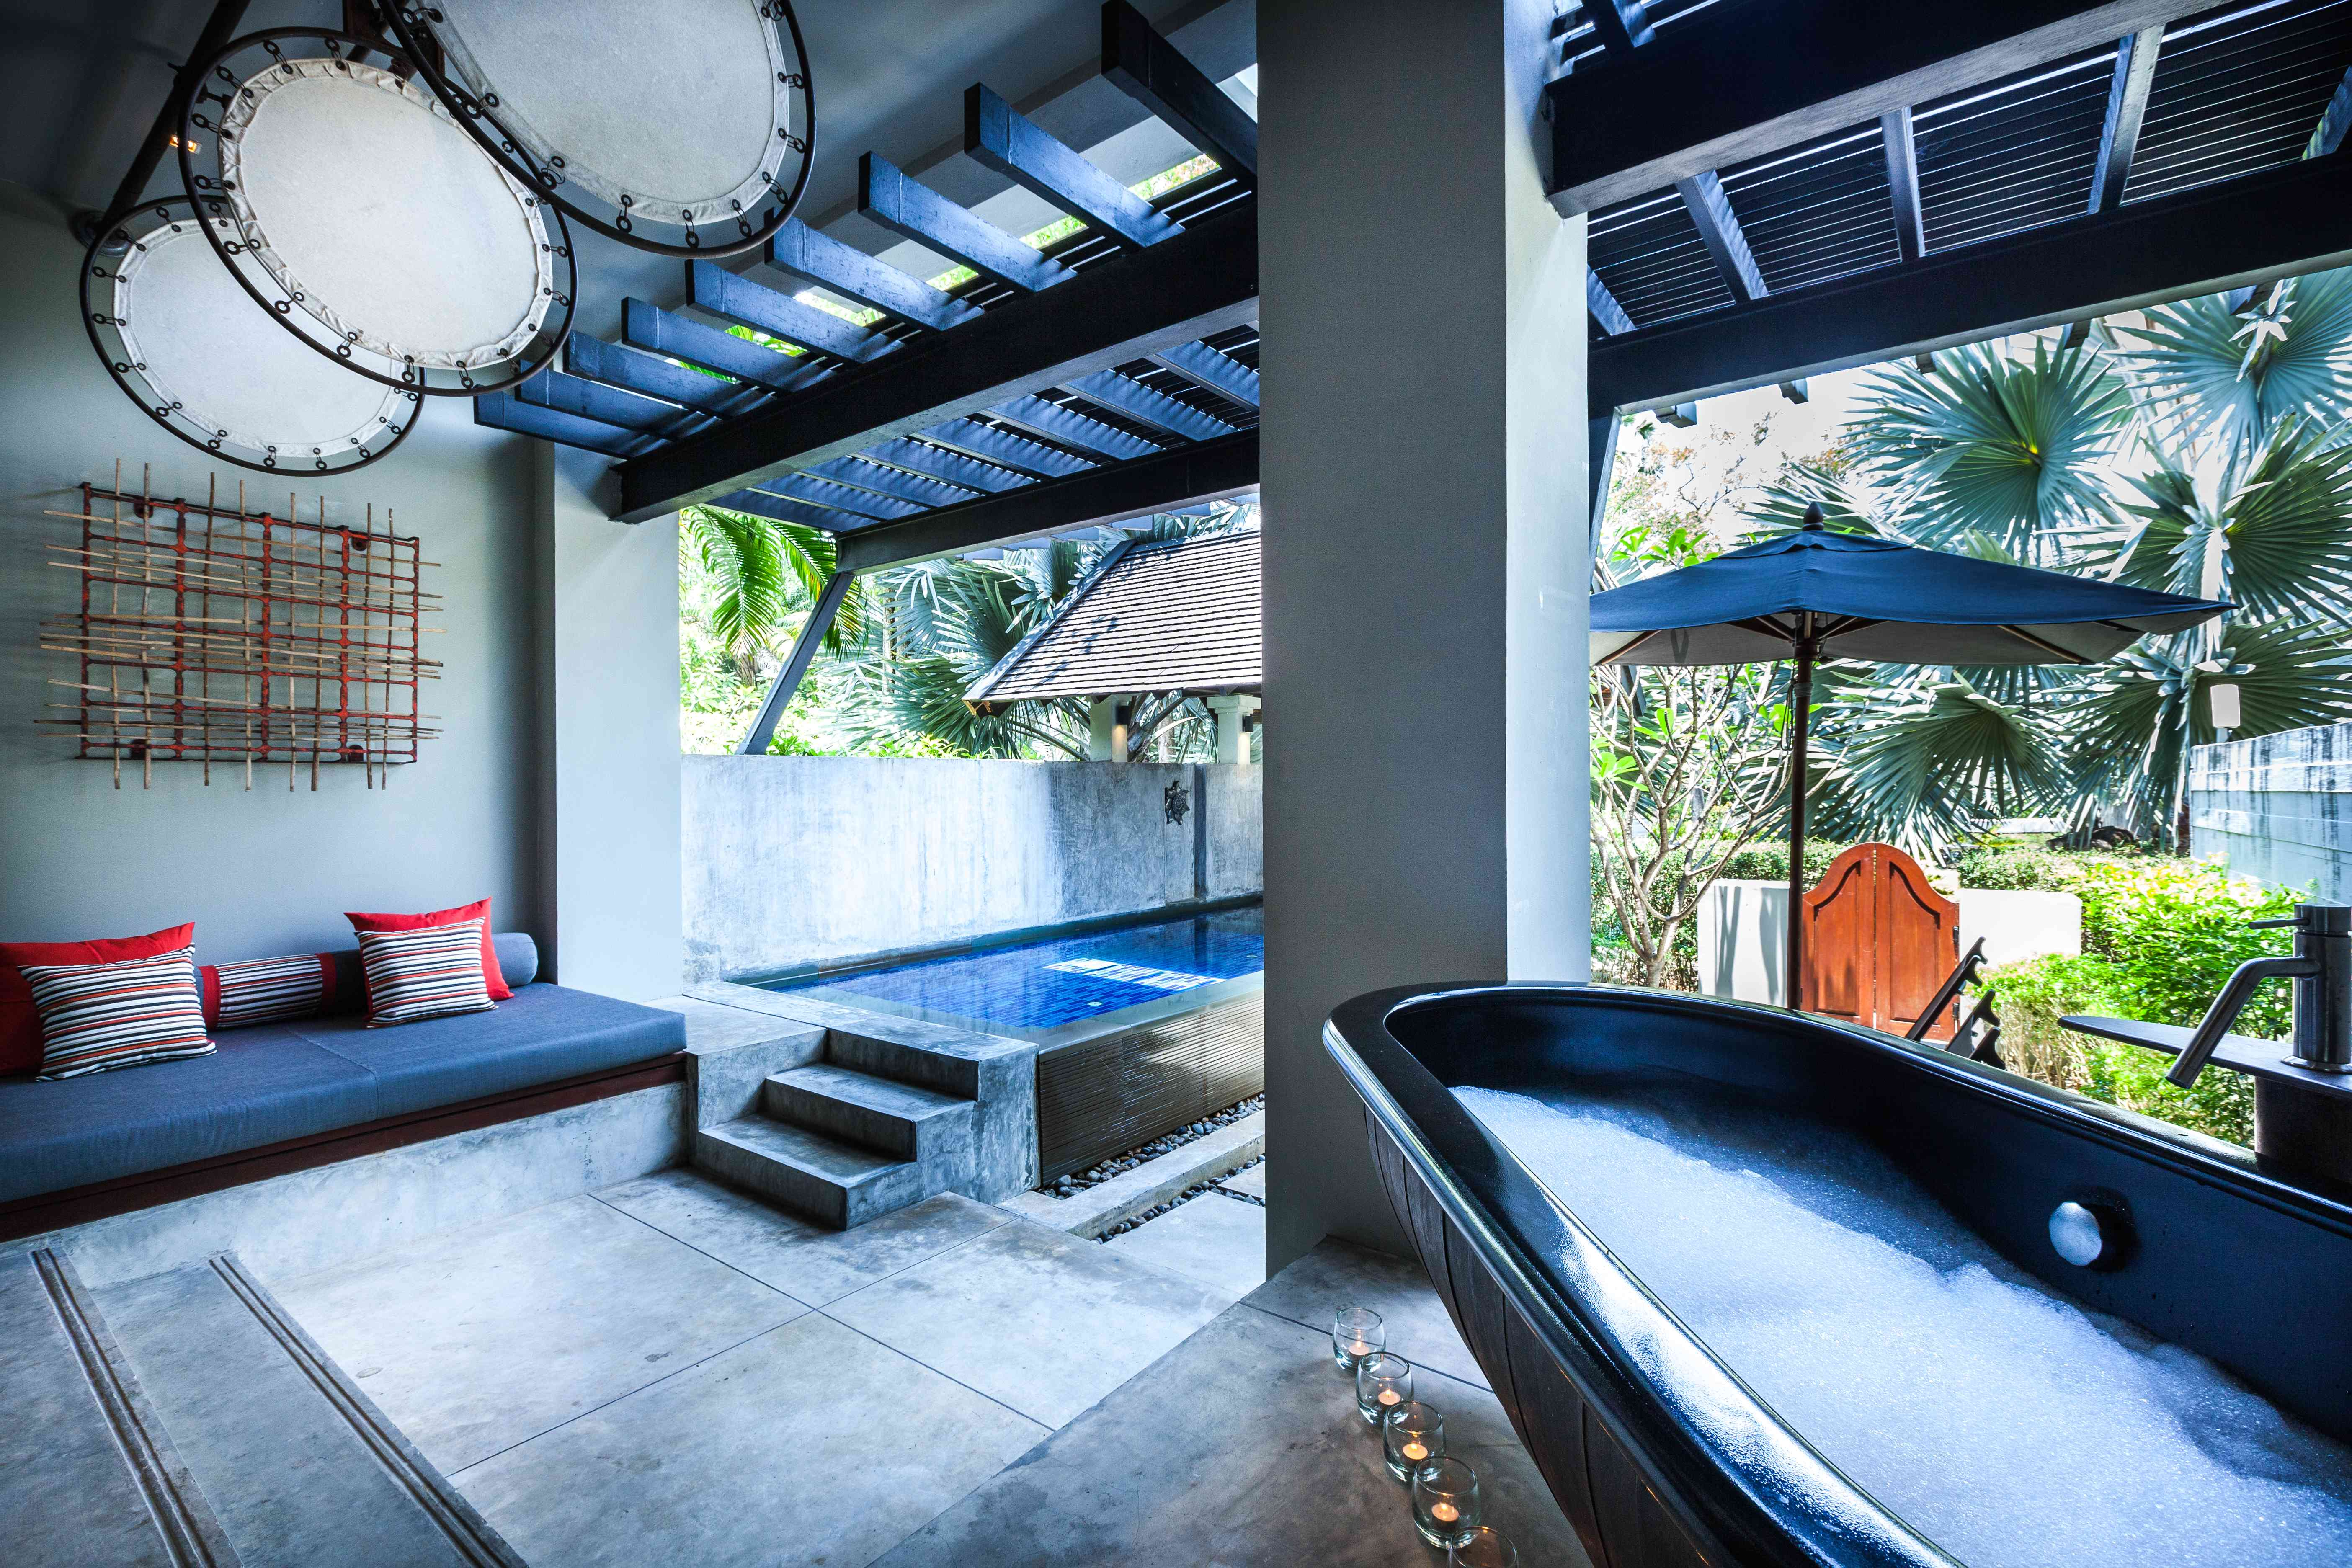 A pool suite at The Slate Phuket